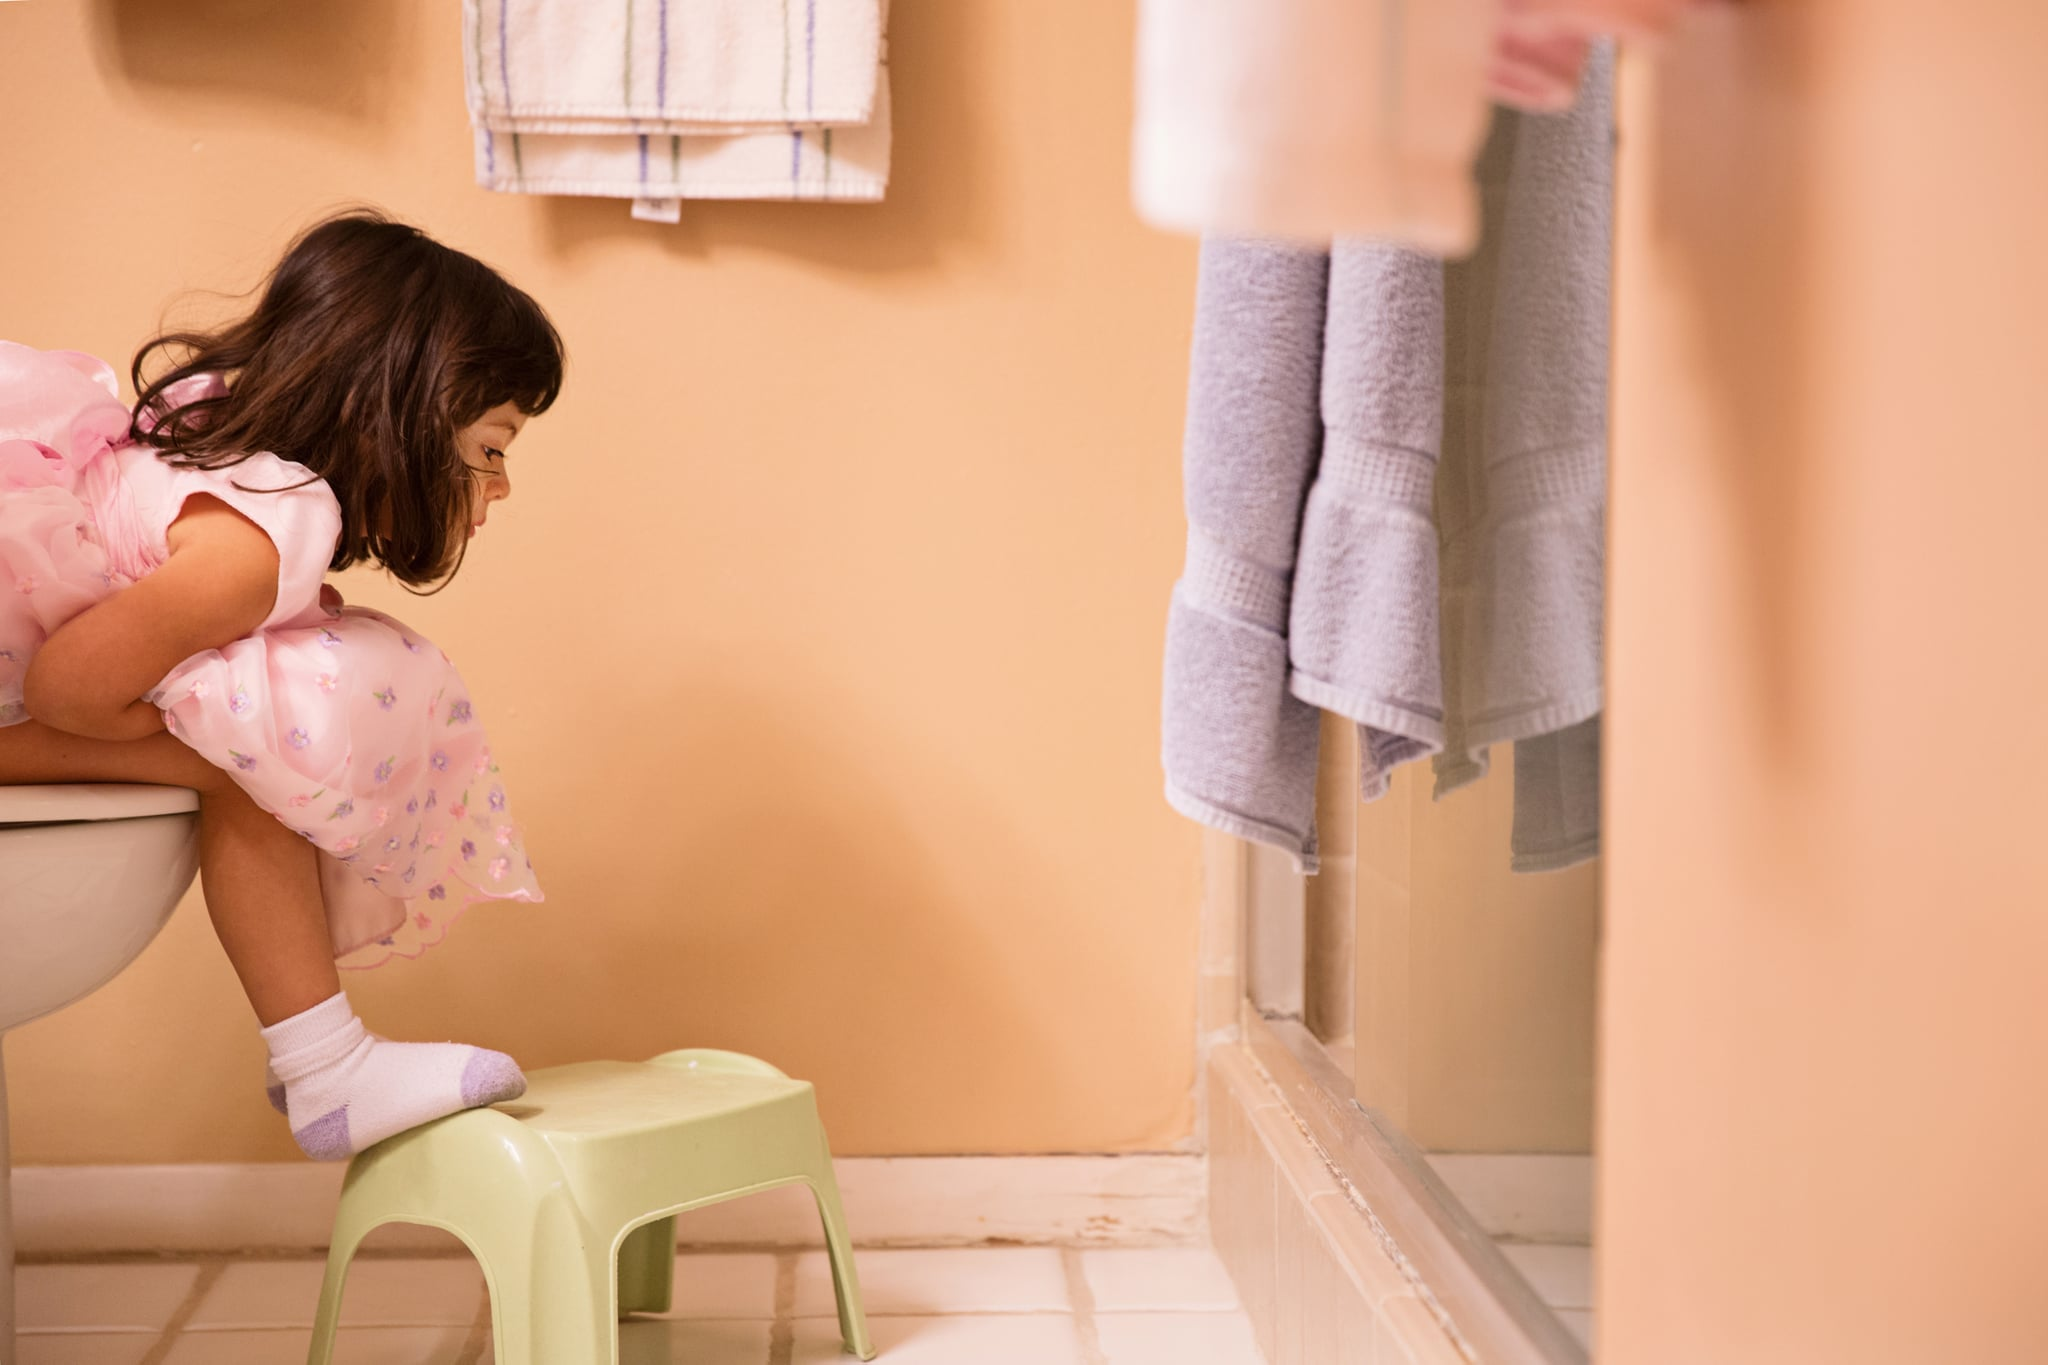 A toddler girl sits on the potty wearing her dress and socks.